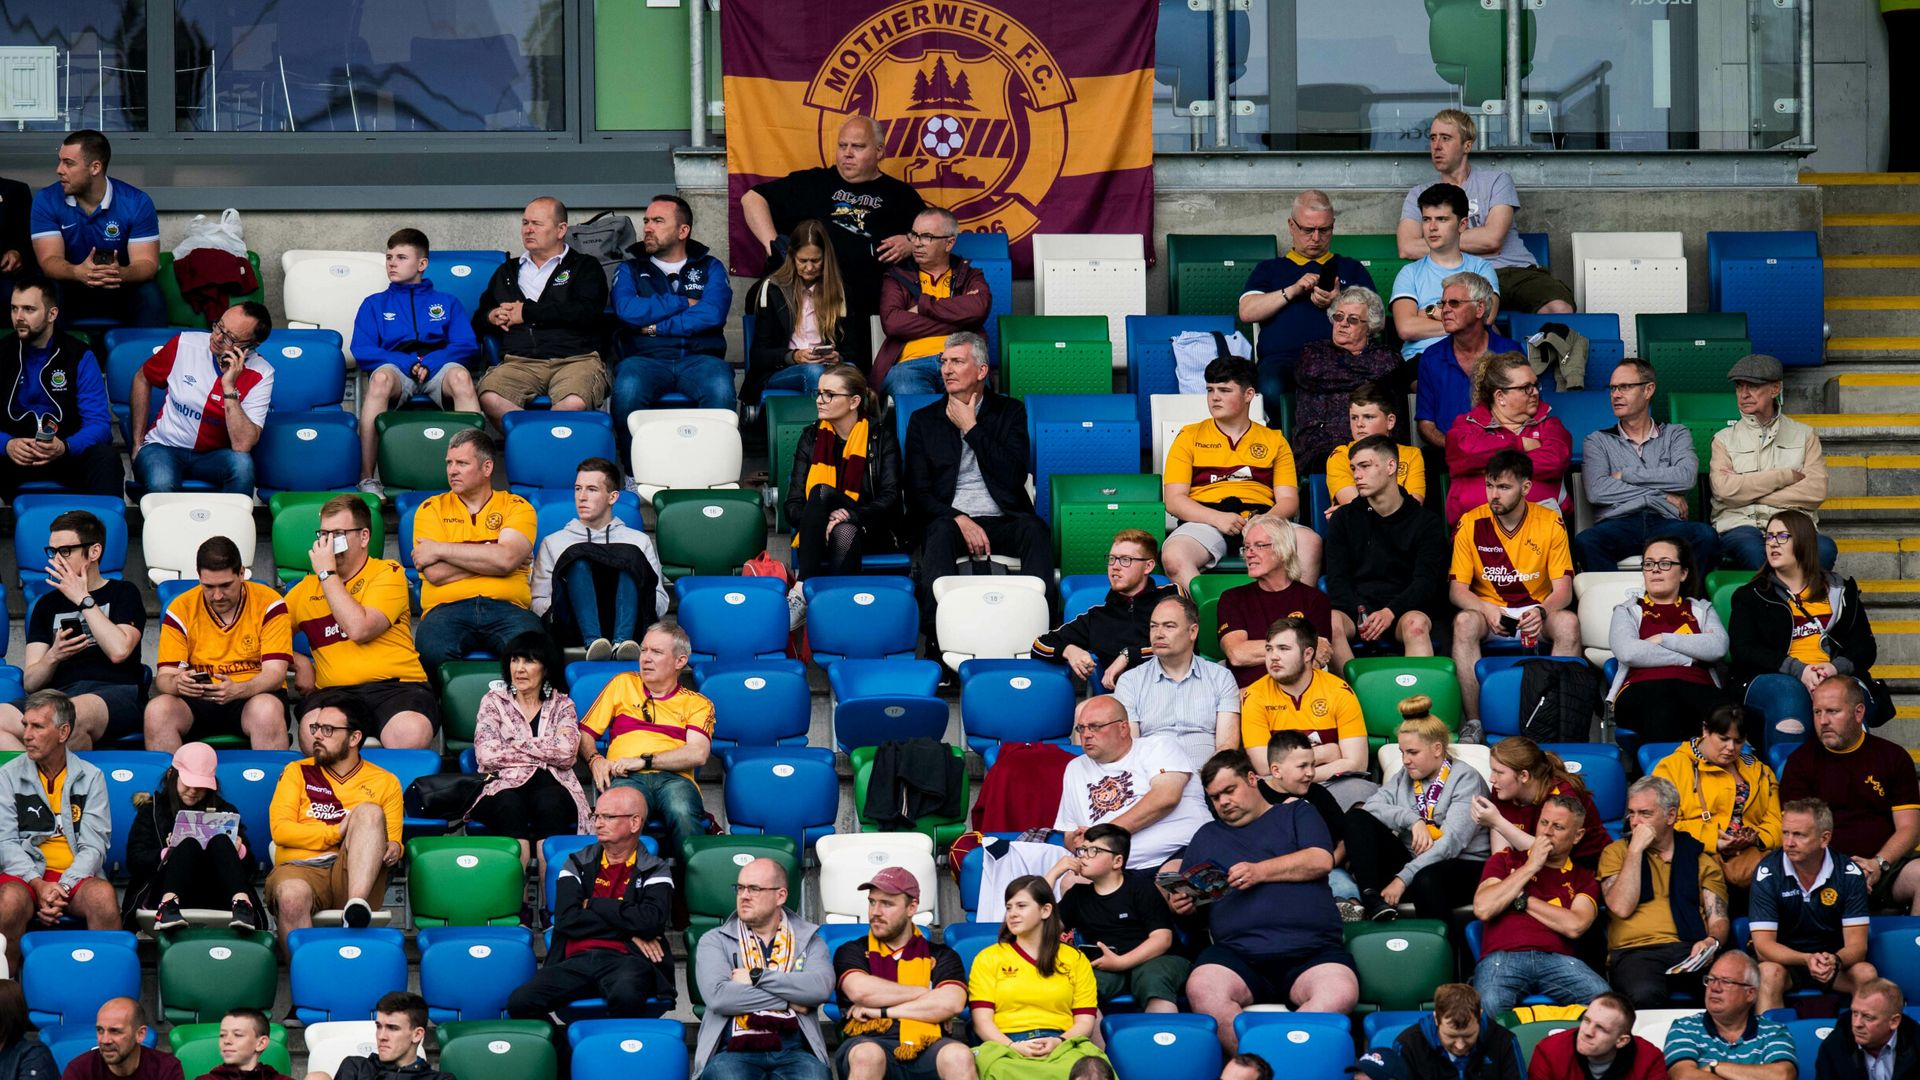 Motherwell reward fans with free season ticket renewal - sky sports